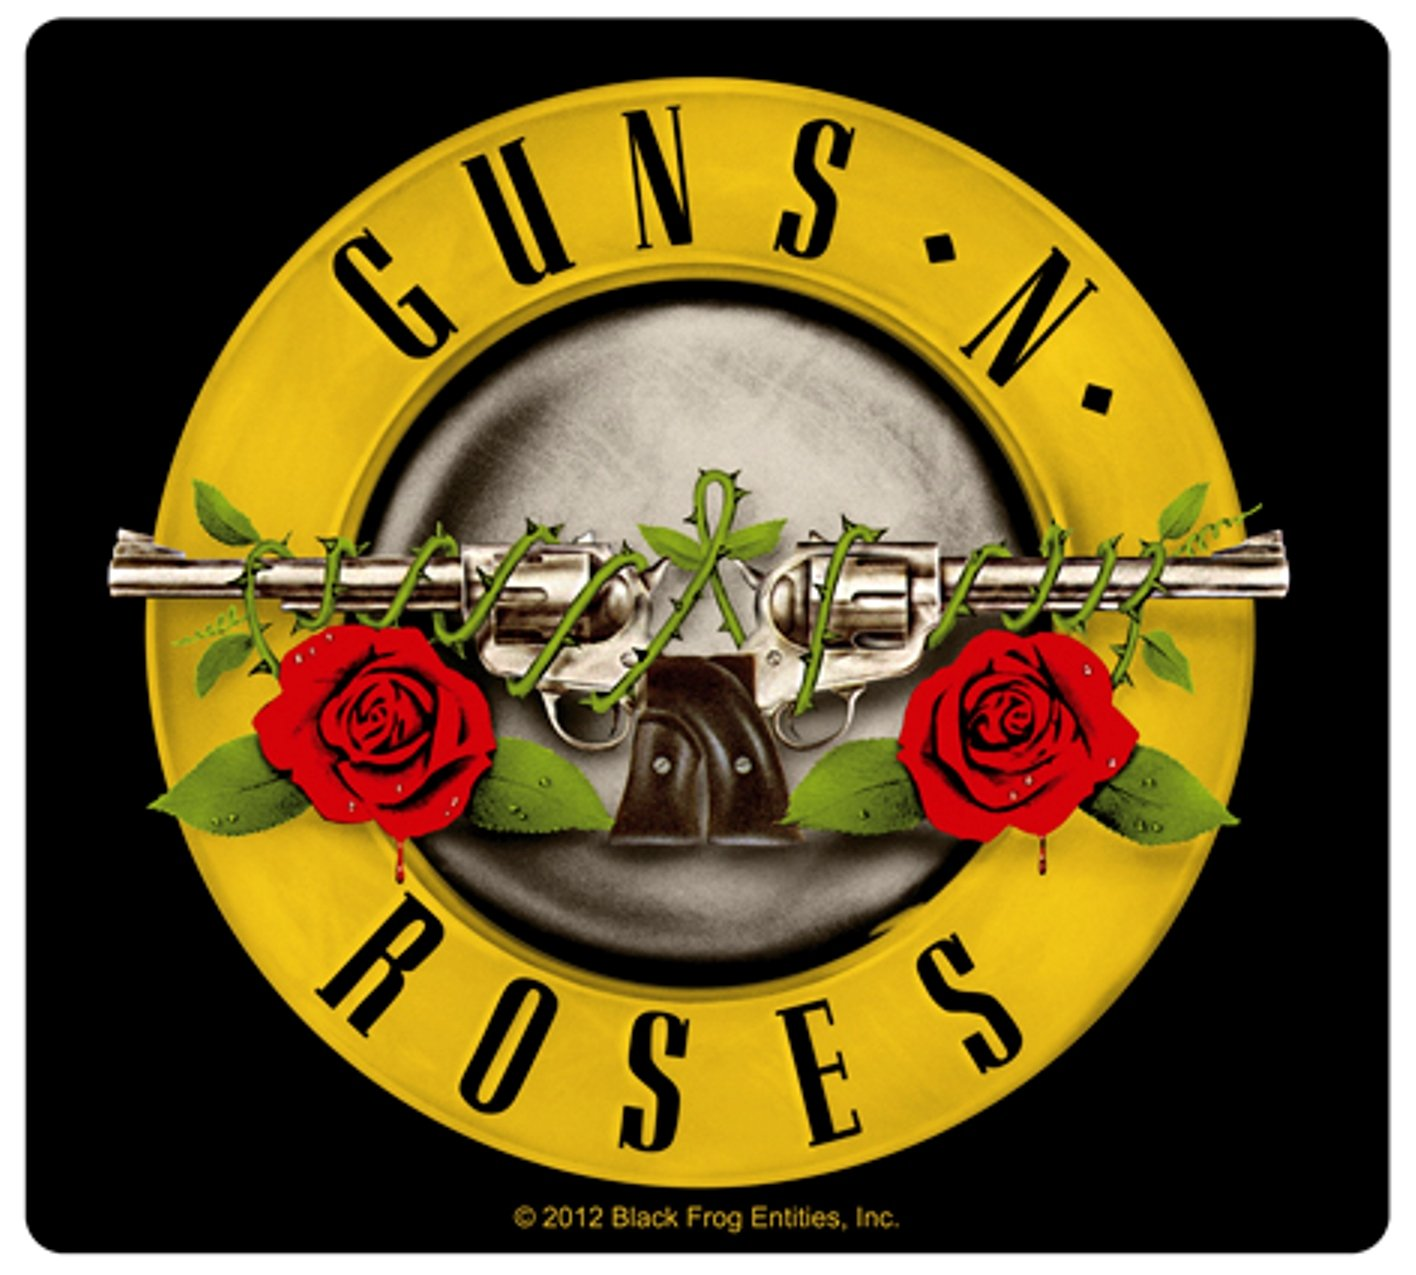 Amazon sticker guns n and roses band name logo art heavy amazon sticker guns n and roses band name logo art heavy metal rock music decal arts crafts sewing thecheapjerseys Choice Image